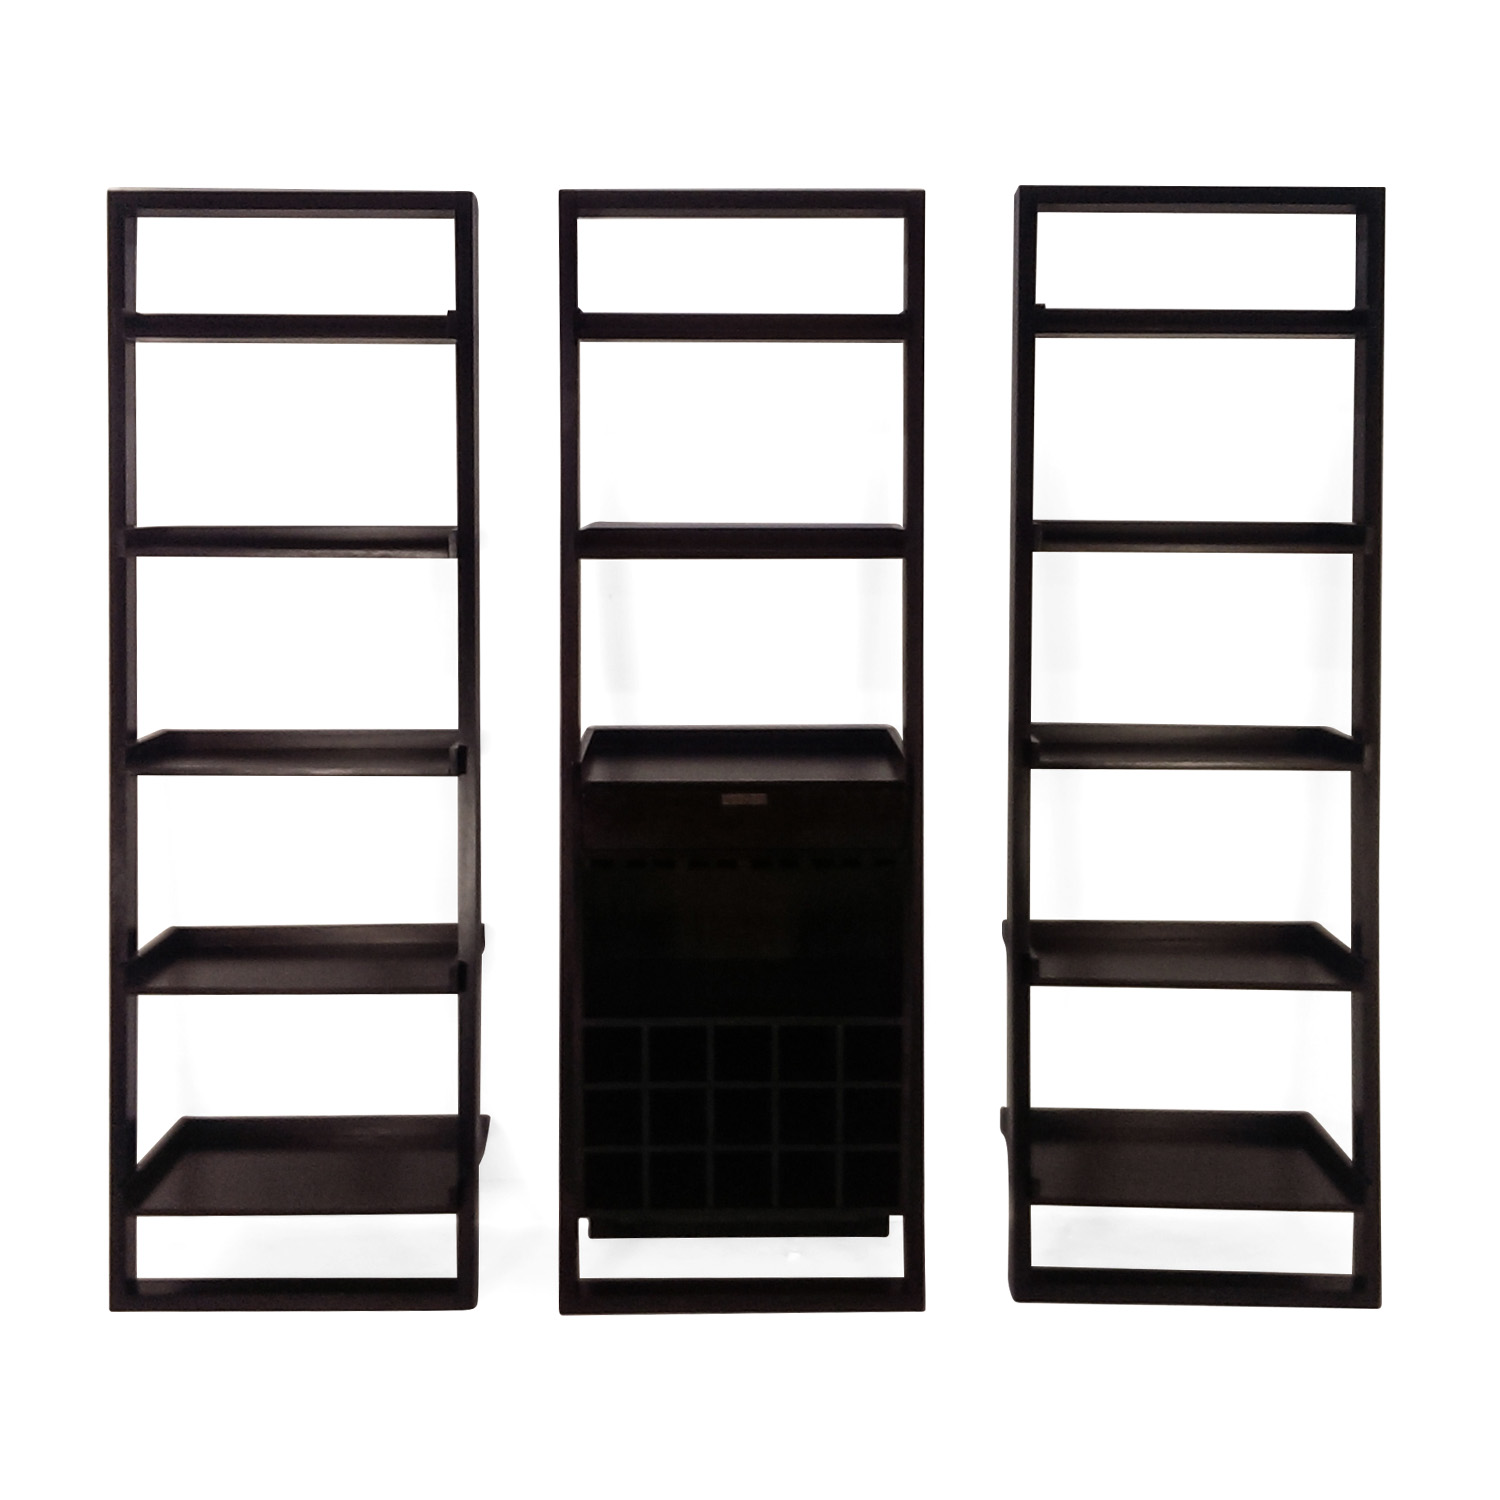 ... Crate and Barrel Crate and Barrel Modular Leaning Bookshelf discount ... - 81% OFF - Crate And Barrel Crate And Barrel Modular Leaning